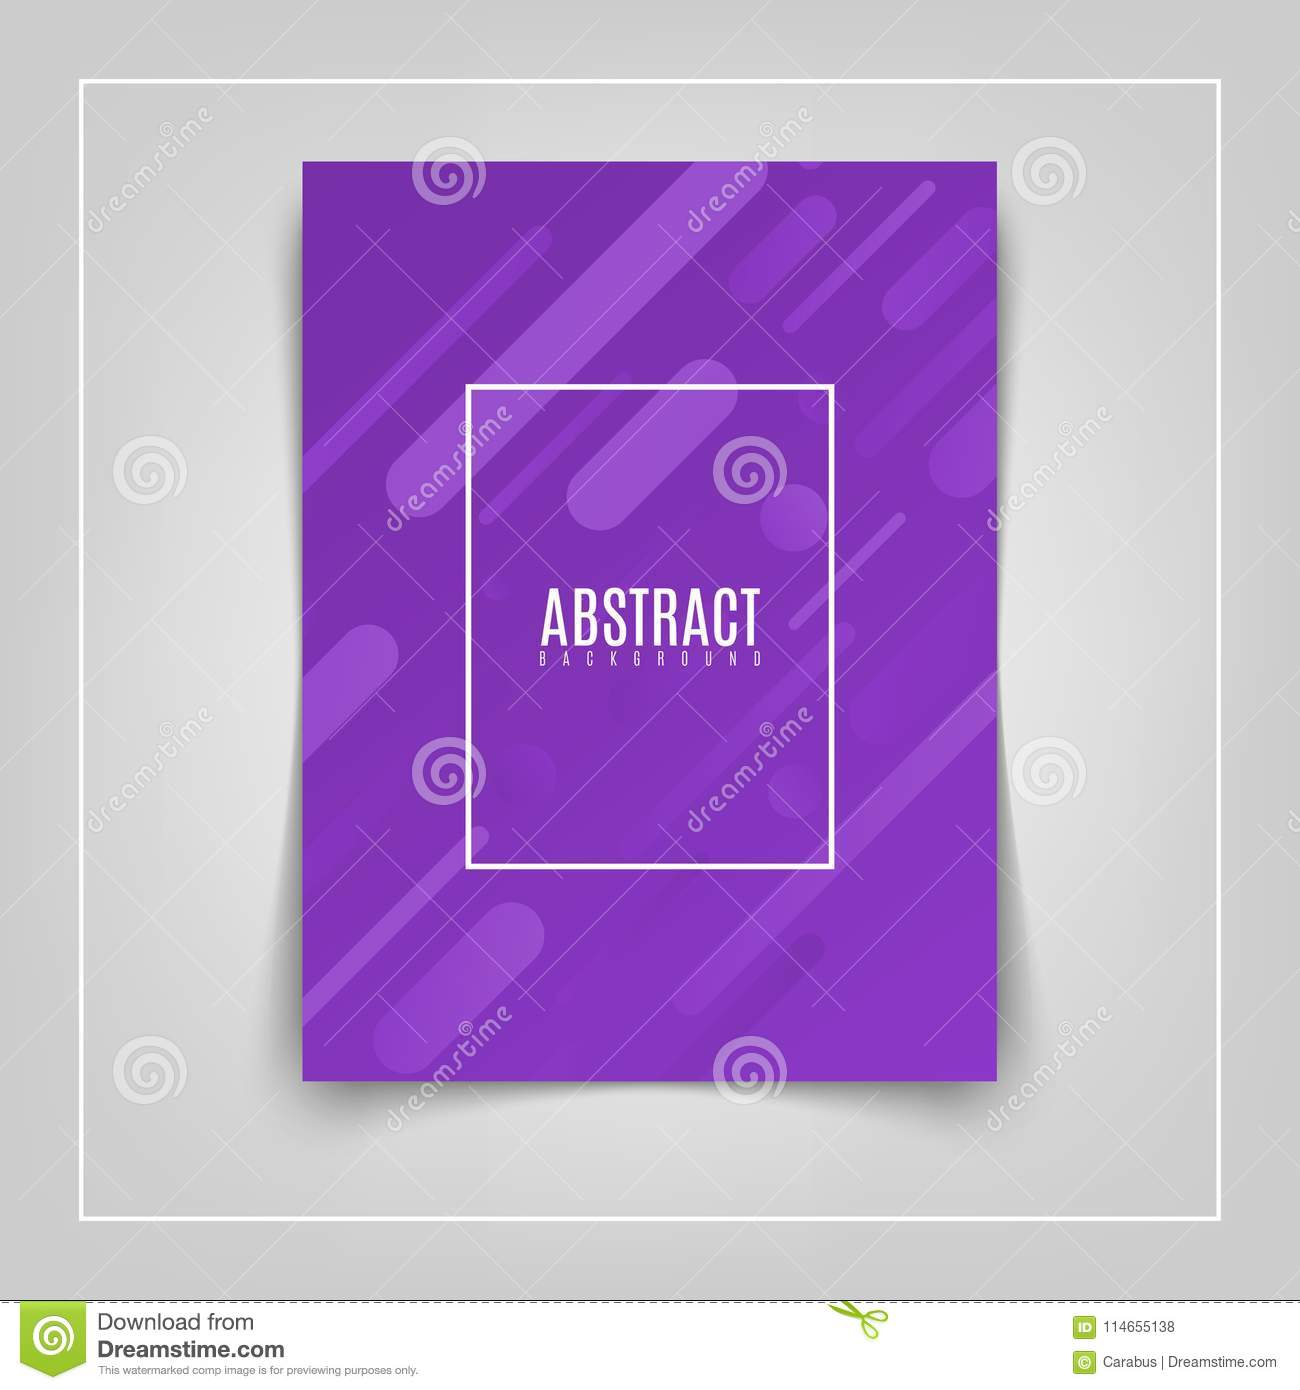 flat ultra violet dynamic design applicable for covers placards